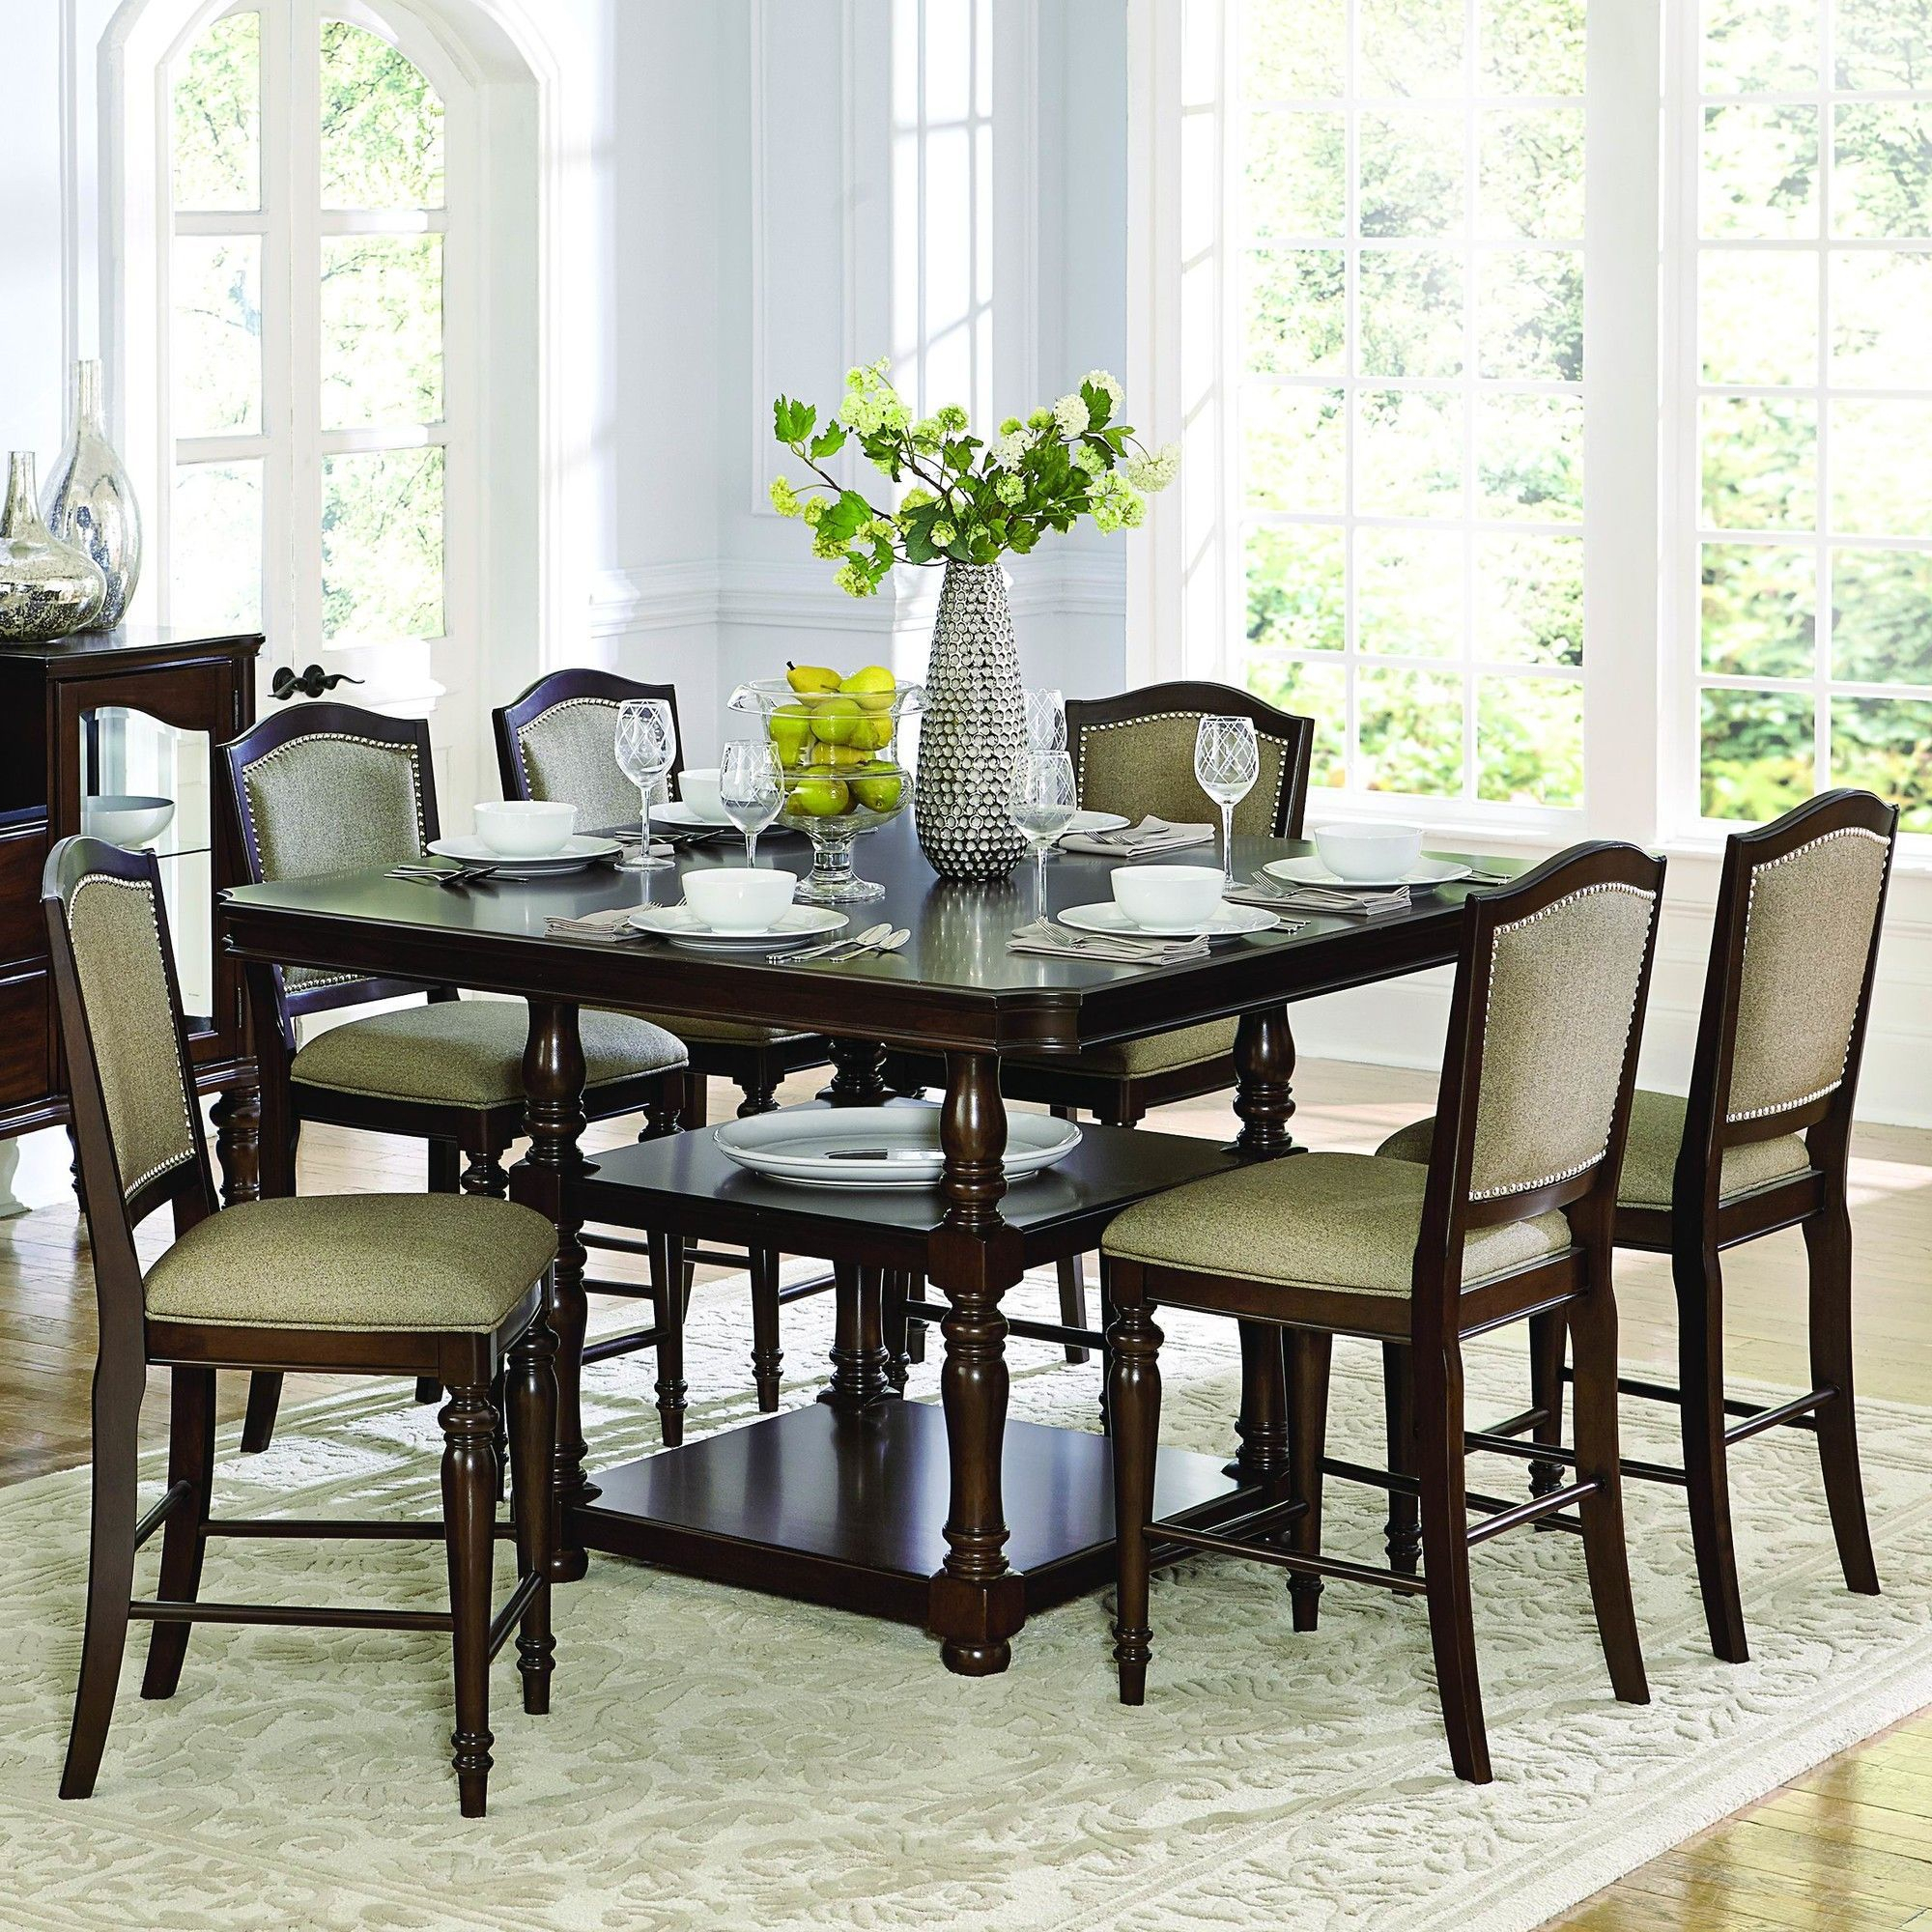 Marable Counter Height Dining Table | Dining Table Throughout Most Up To Date Dawid Counter Height Pedestal Dining Tables (View 10 of 15)